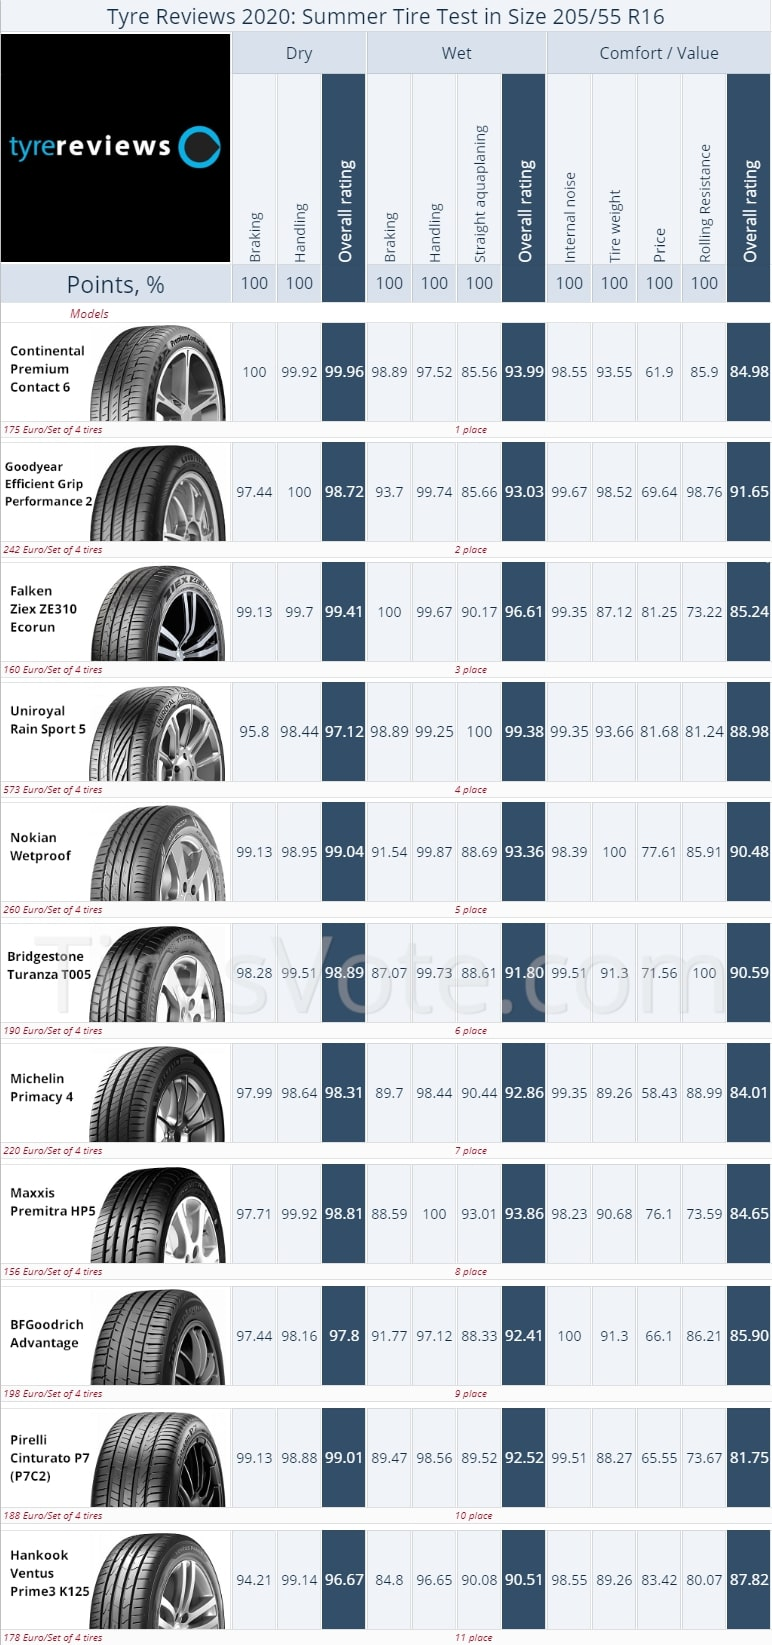 Summer tire test summary Tyre Reviews R16, 2020. Places 1–11. Click to enlarge.